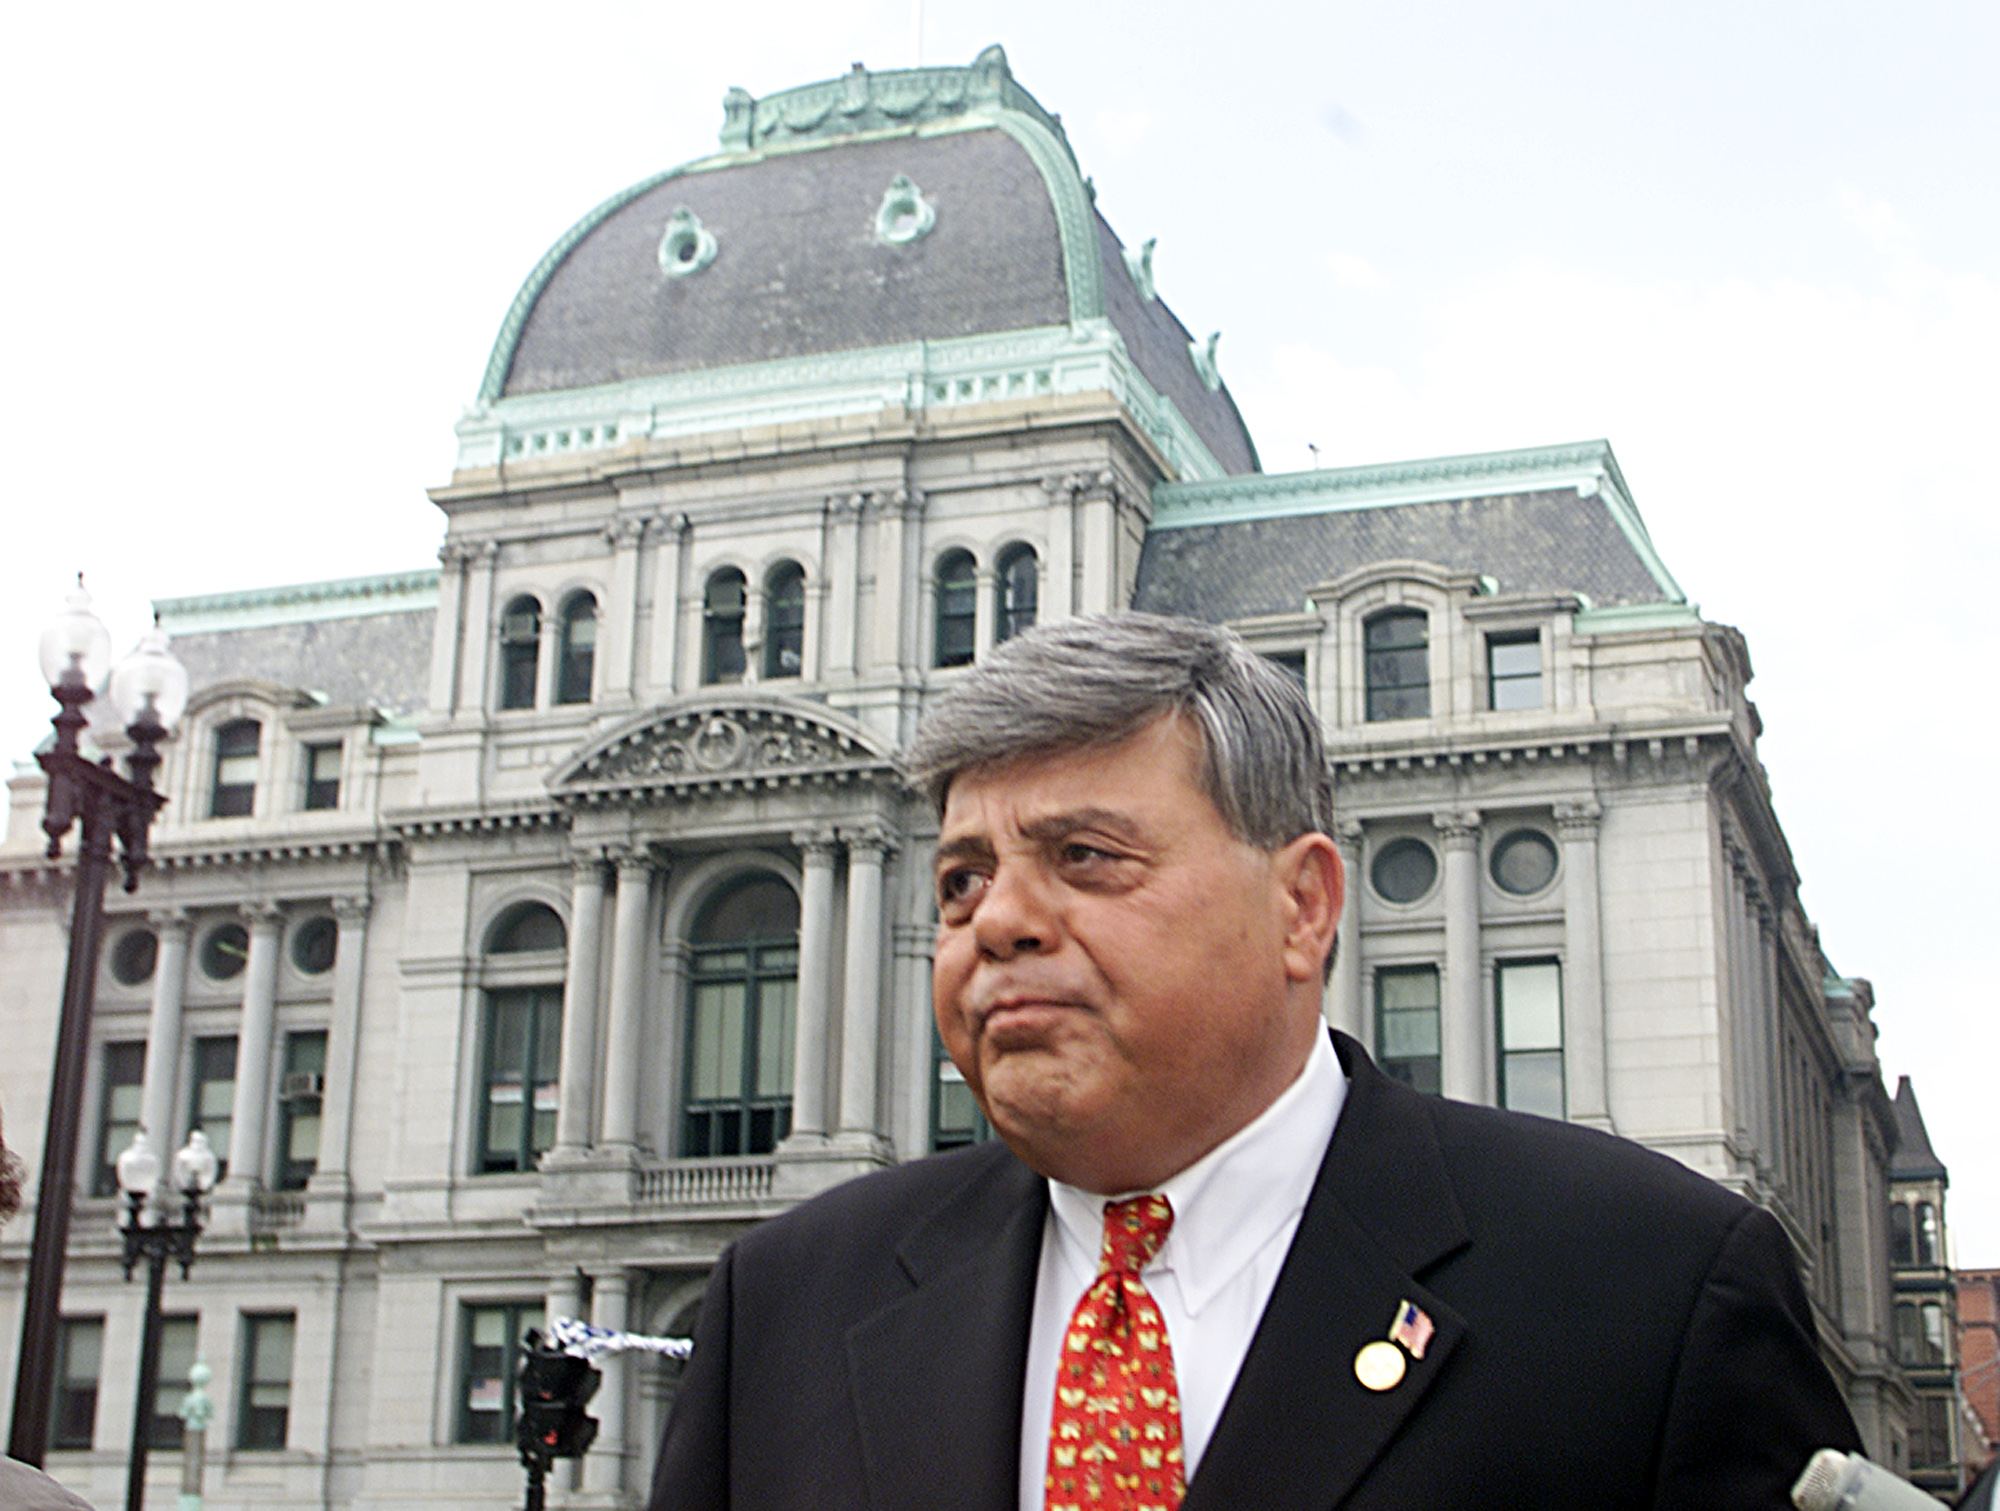 Providence Mayor Vincent Cianci Jr., walks from his residence at the Biltmore Hotel to the Federal Court House passing in front of City Hall Wednesday, April 17, 2002 in Providence, R.I. The mayor and five others were indicted last April on charges that include racketeering, bribery and extortion. Jury selection in the case against Cianci and three others begins Wednesday. The 60-year-old Cianci is the longest-serving big city mayor in America and among the most popular political figures in state history. (AP Photo/Stew Milne)